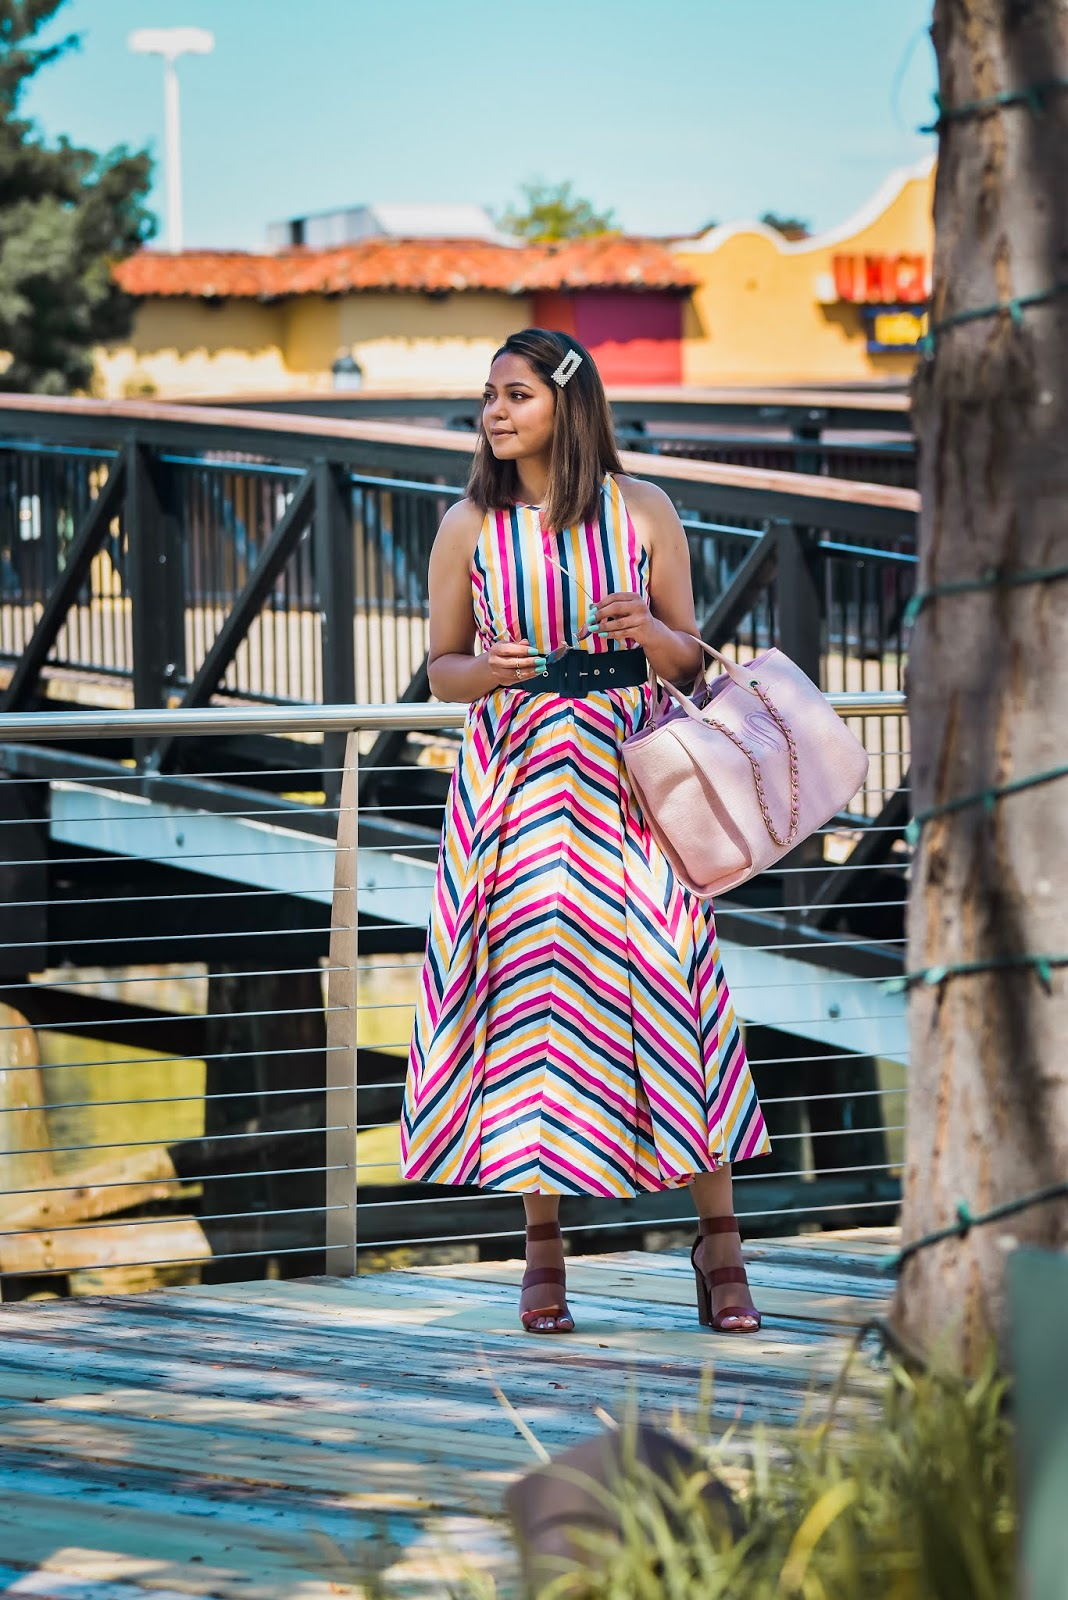 j crew stripe dress, midi dress, fall fashion, colorful stripes dress, belt over dress, custom made bag, madden girl sandals, casual style, street style, myriad musings